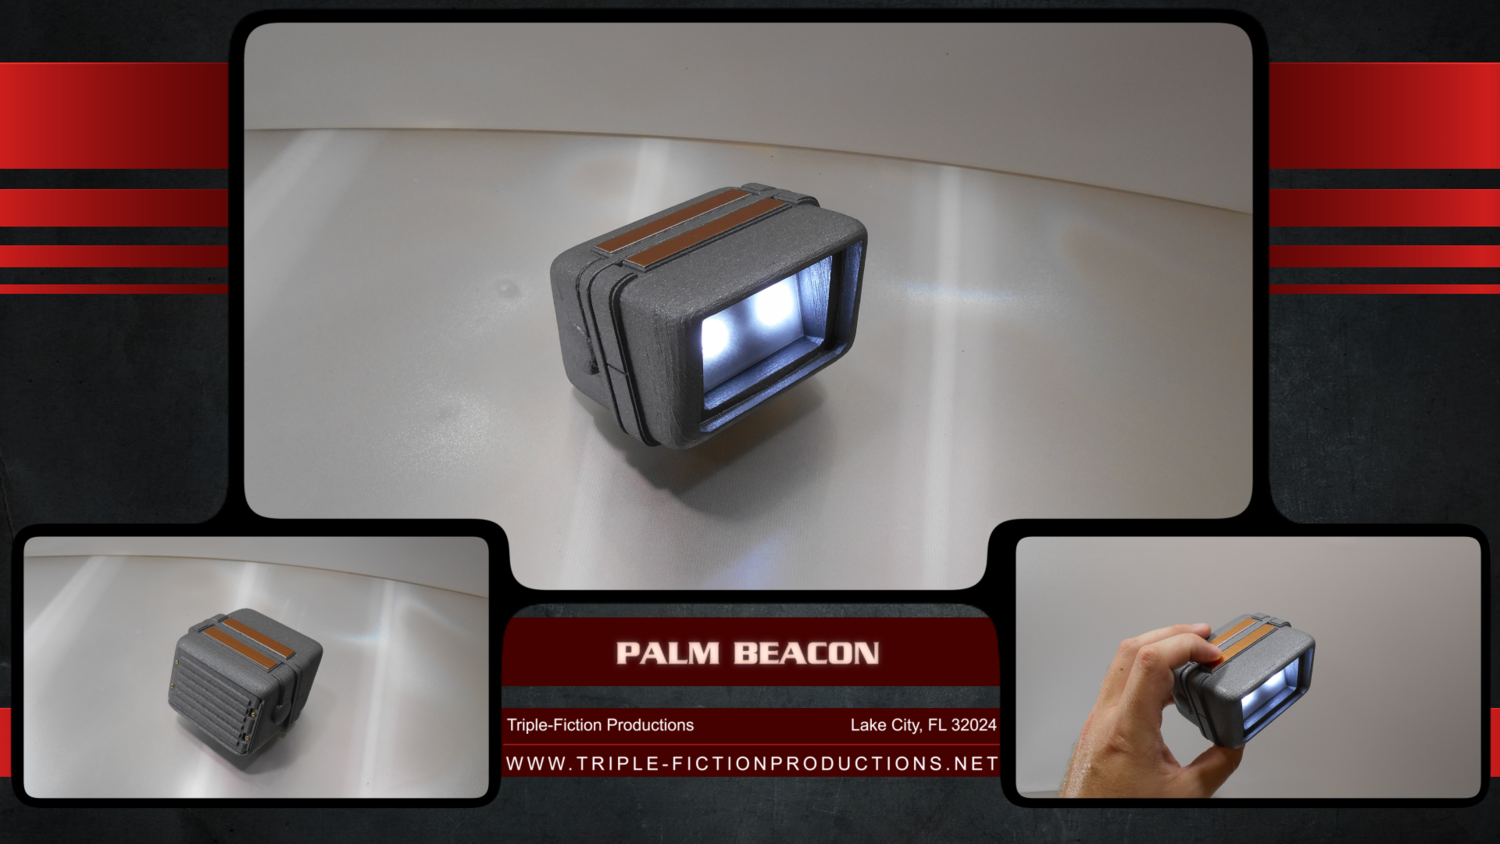 Palm Beacon